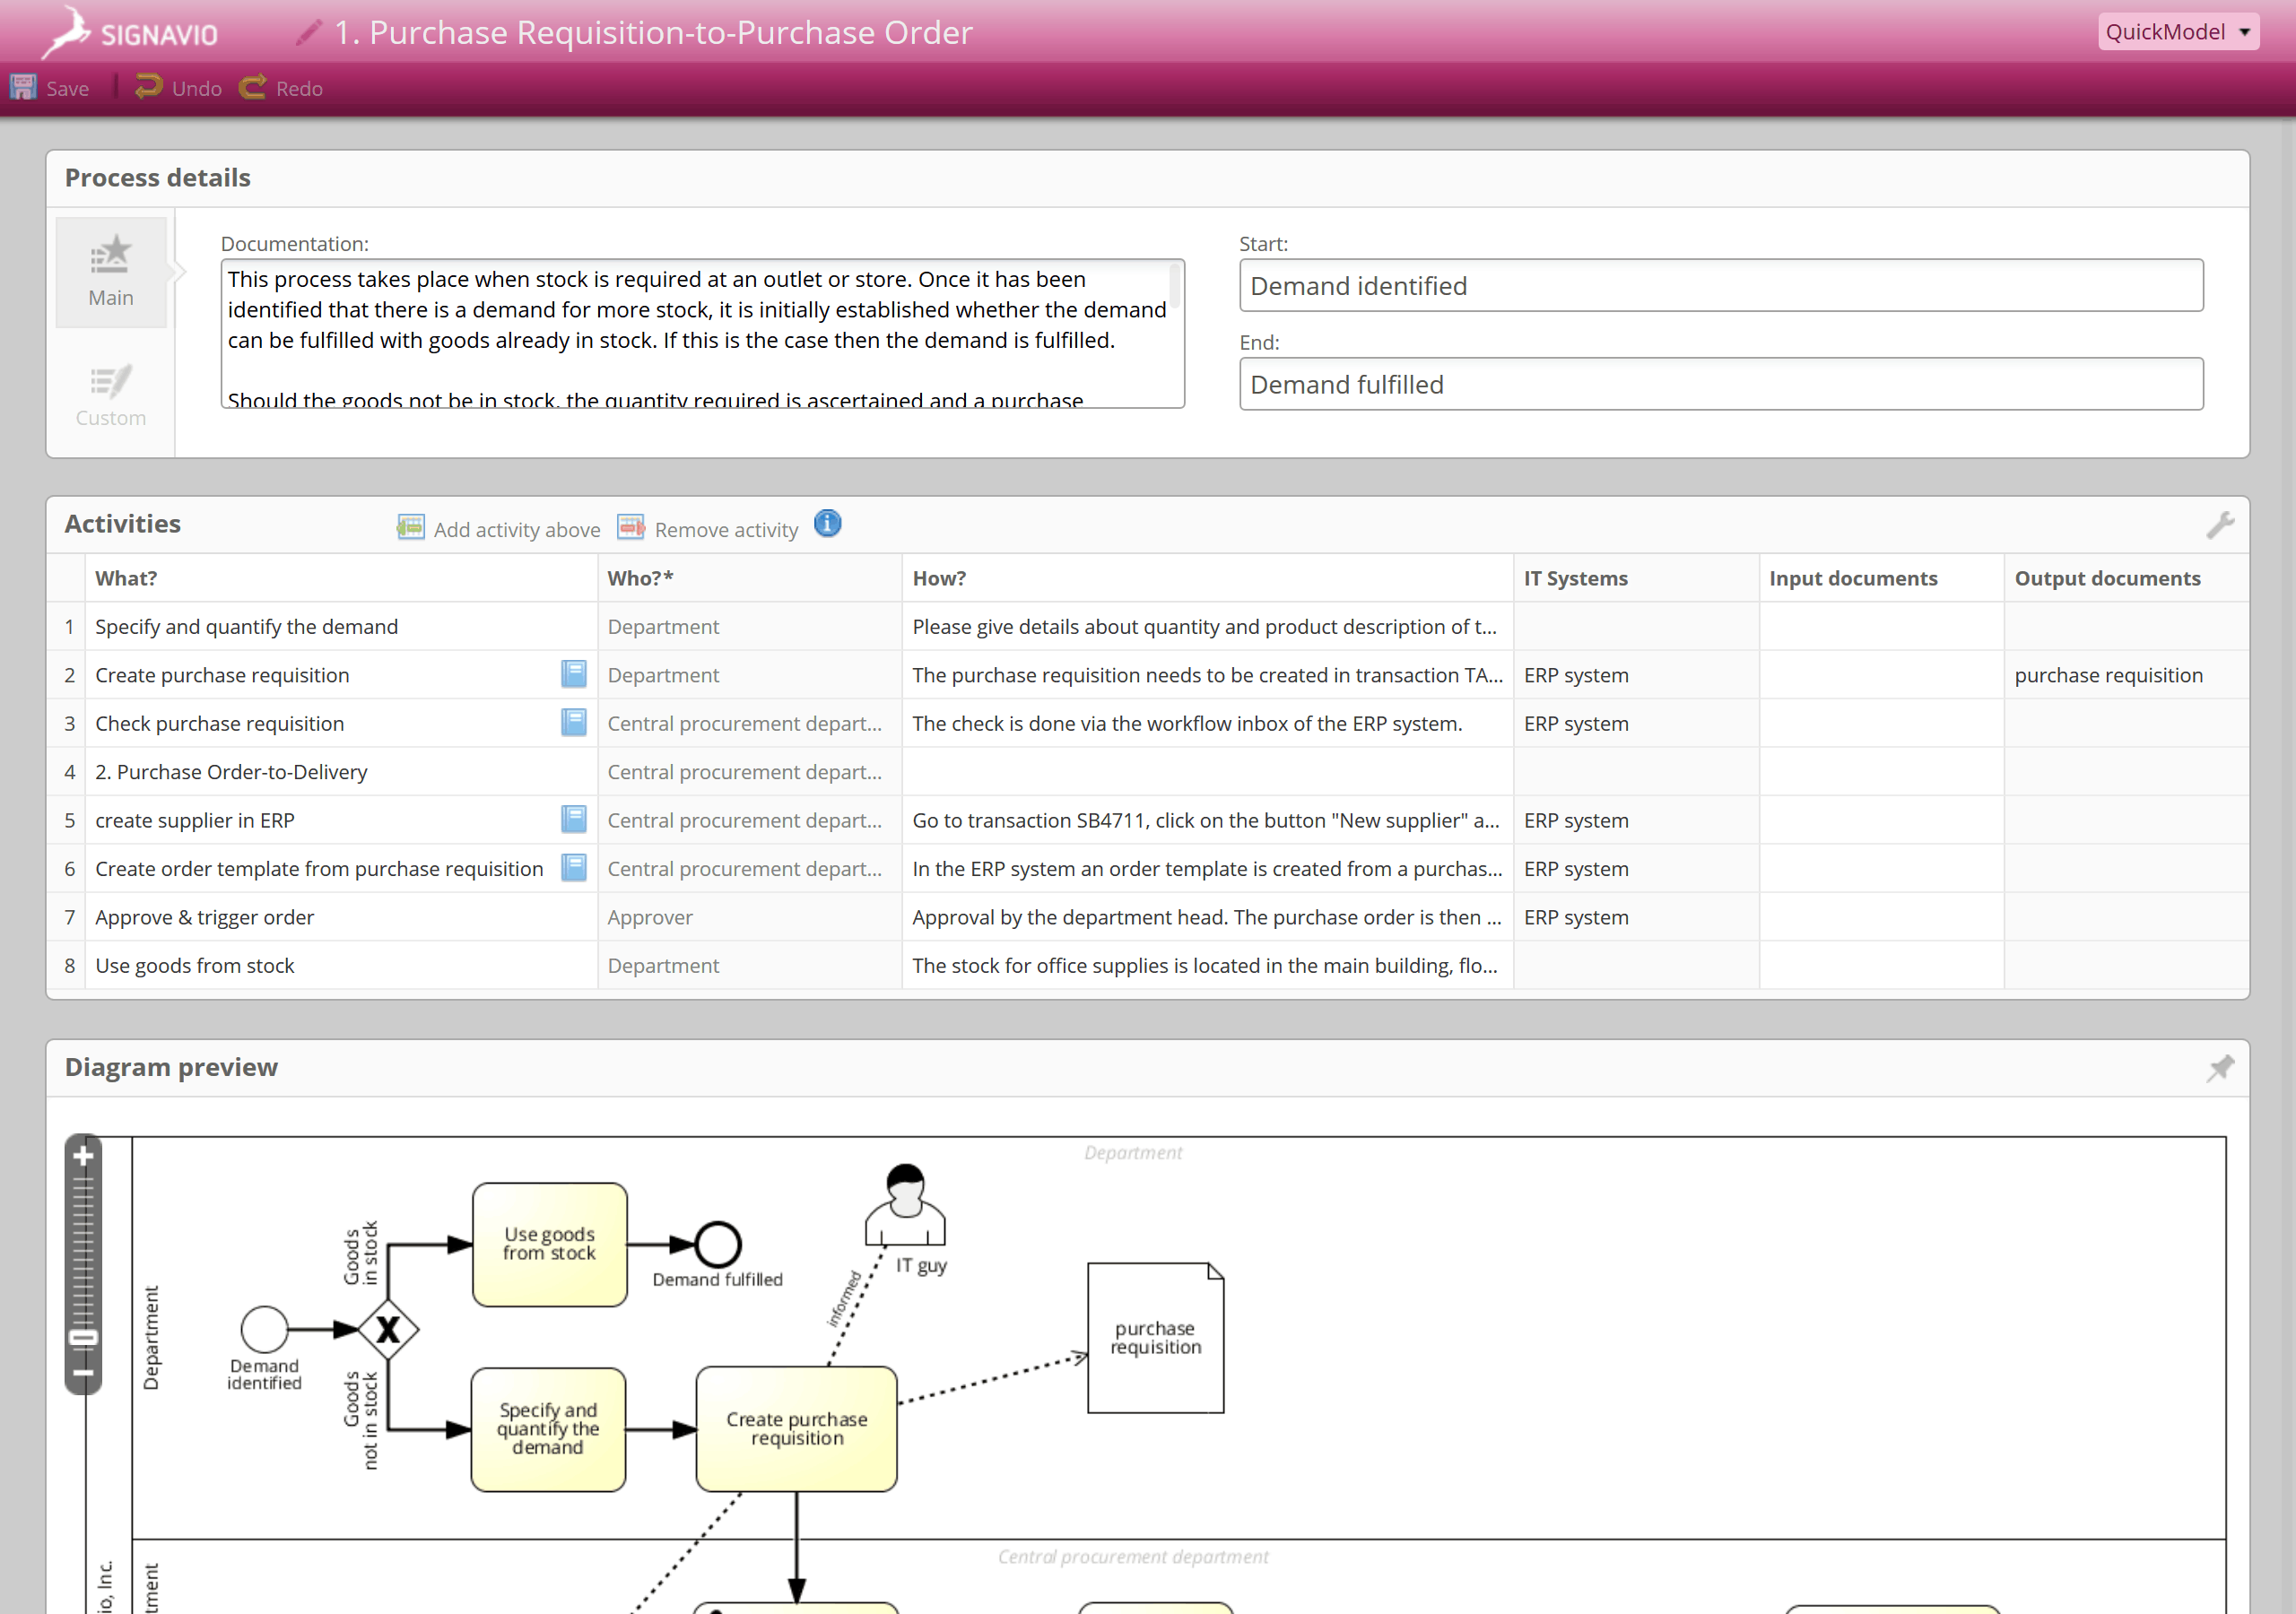 Signavio BPMN QuickModel Screenshot